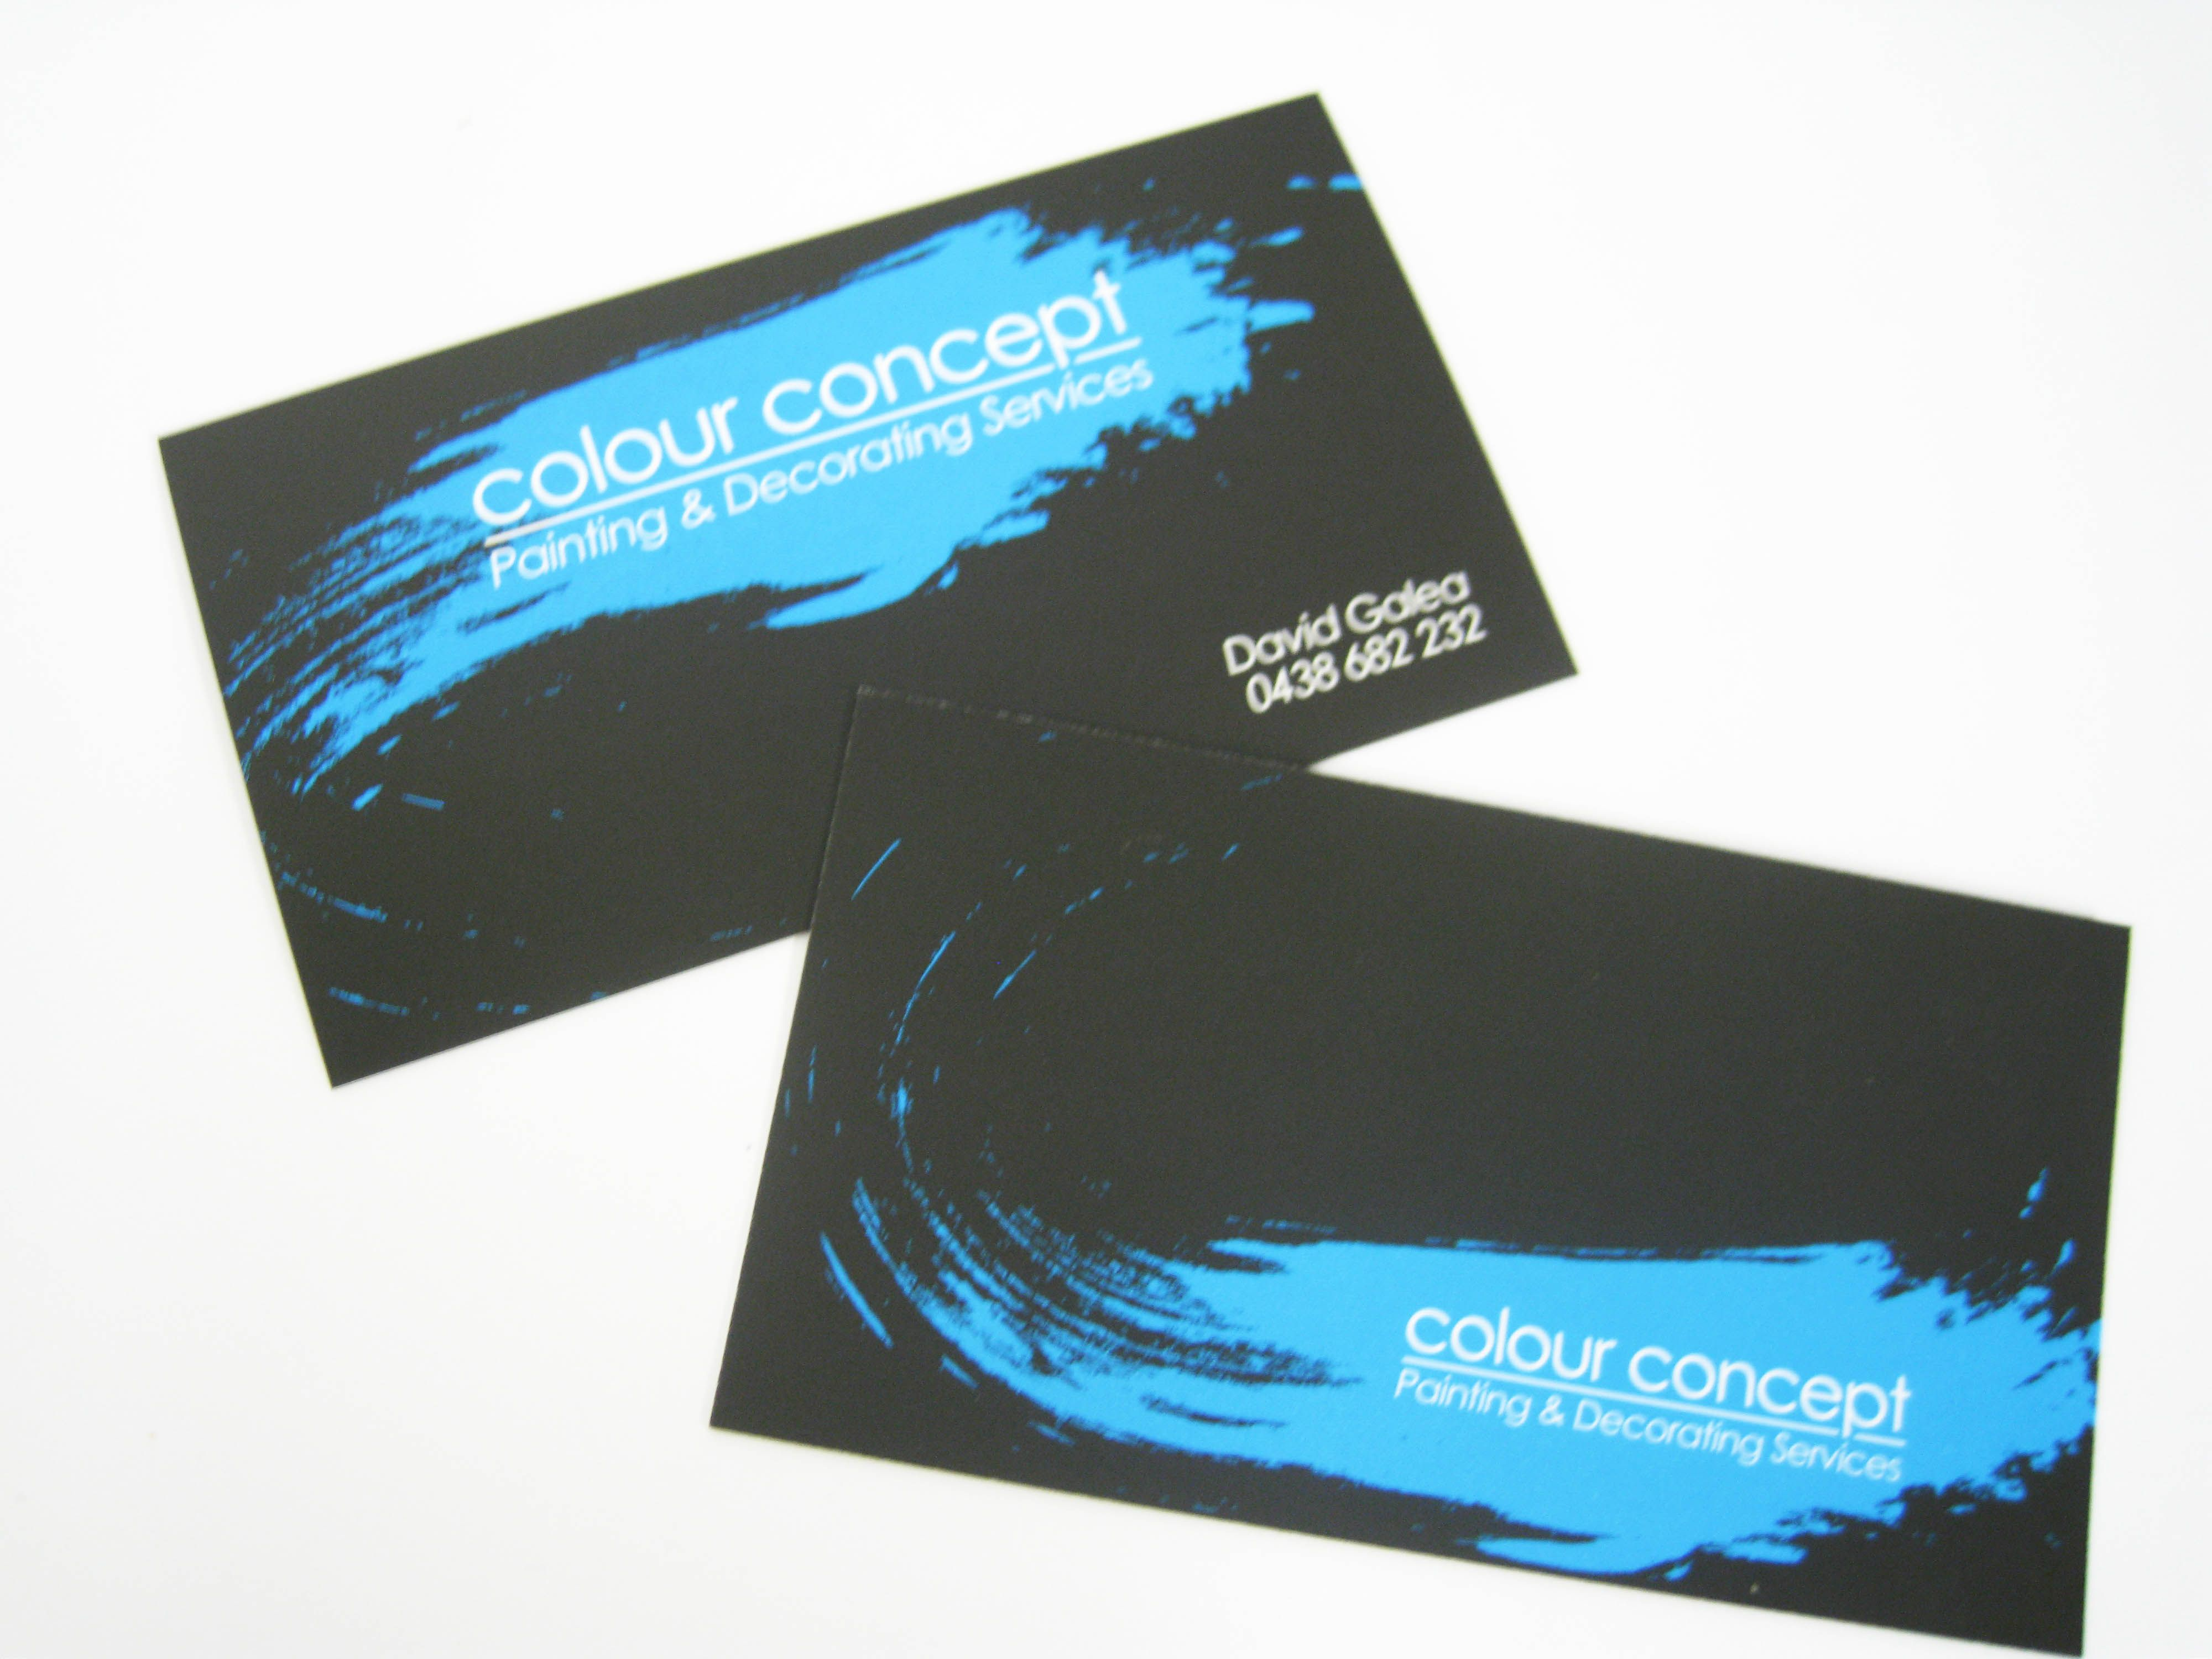 Matte Laminated Business Cards designed and printed for Colour ...